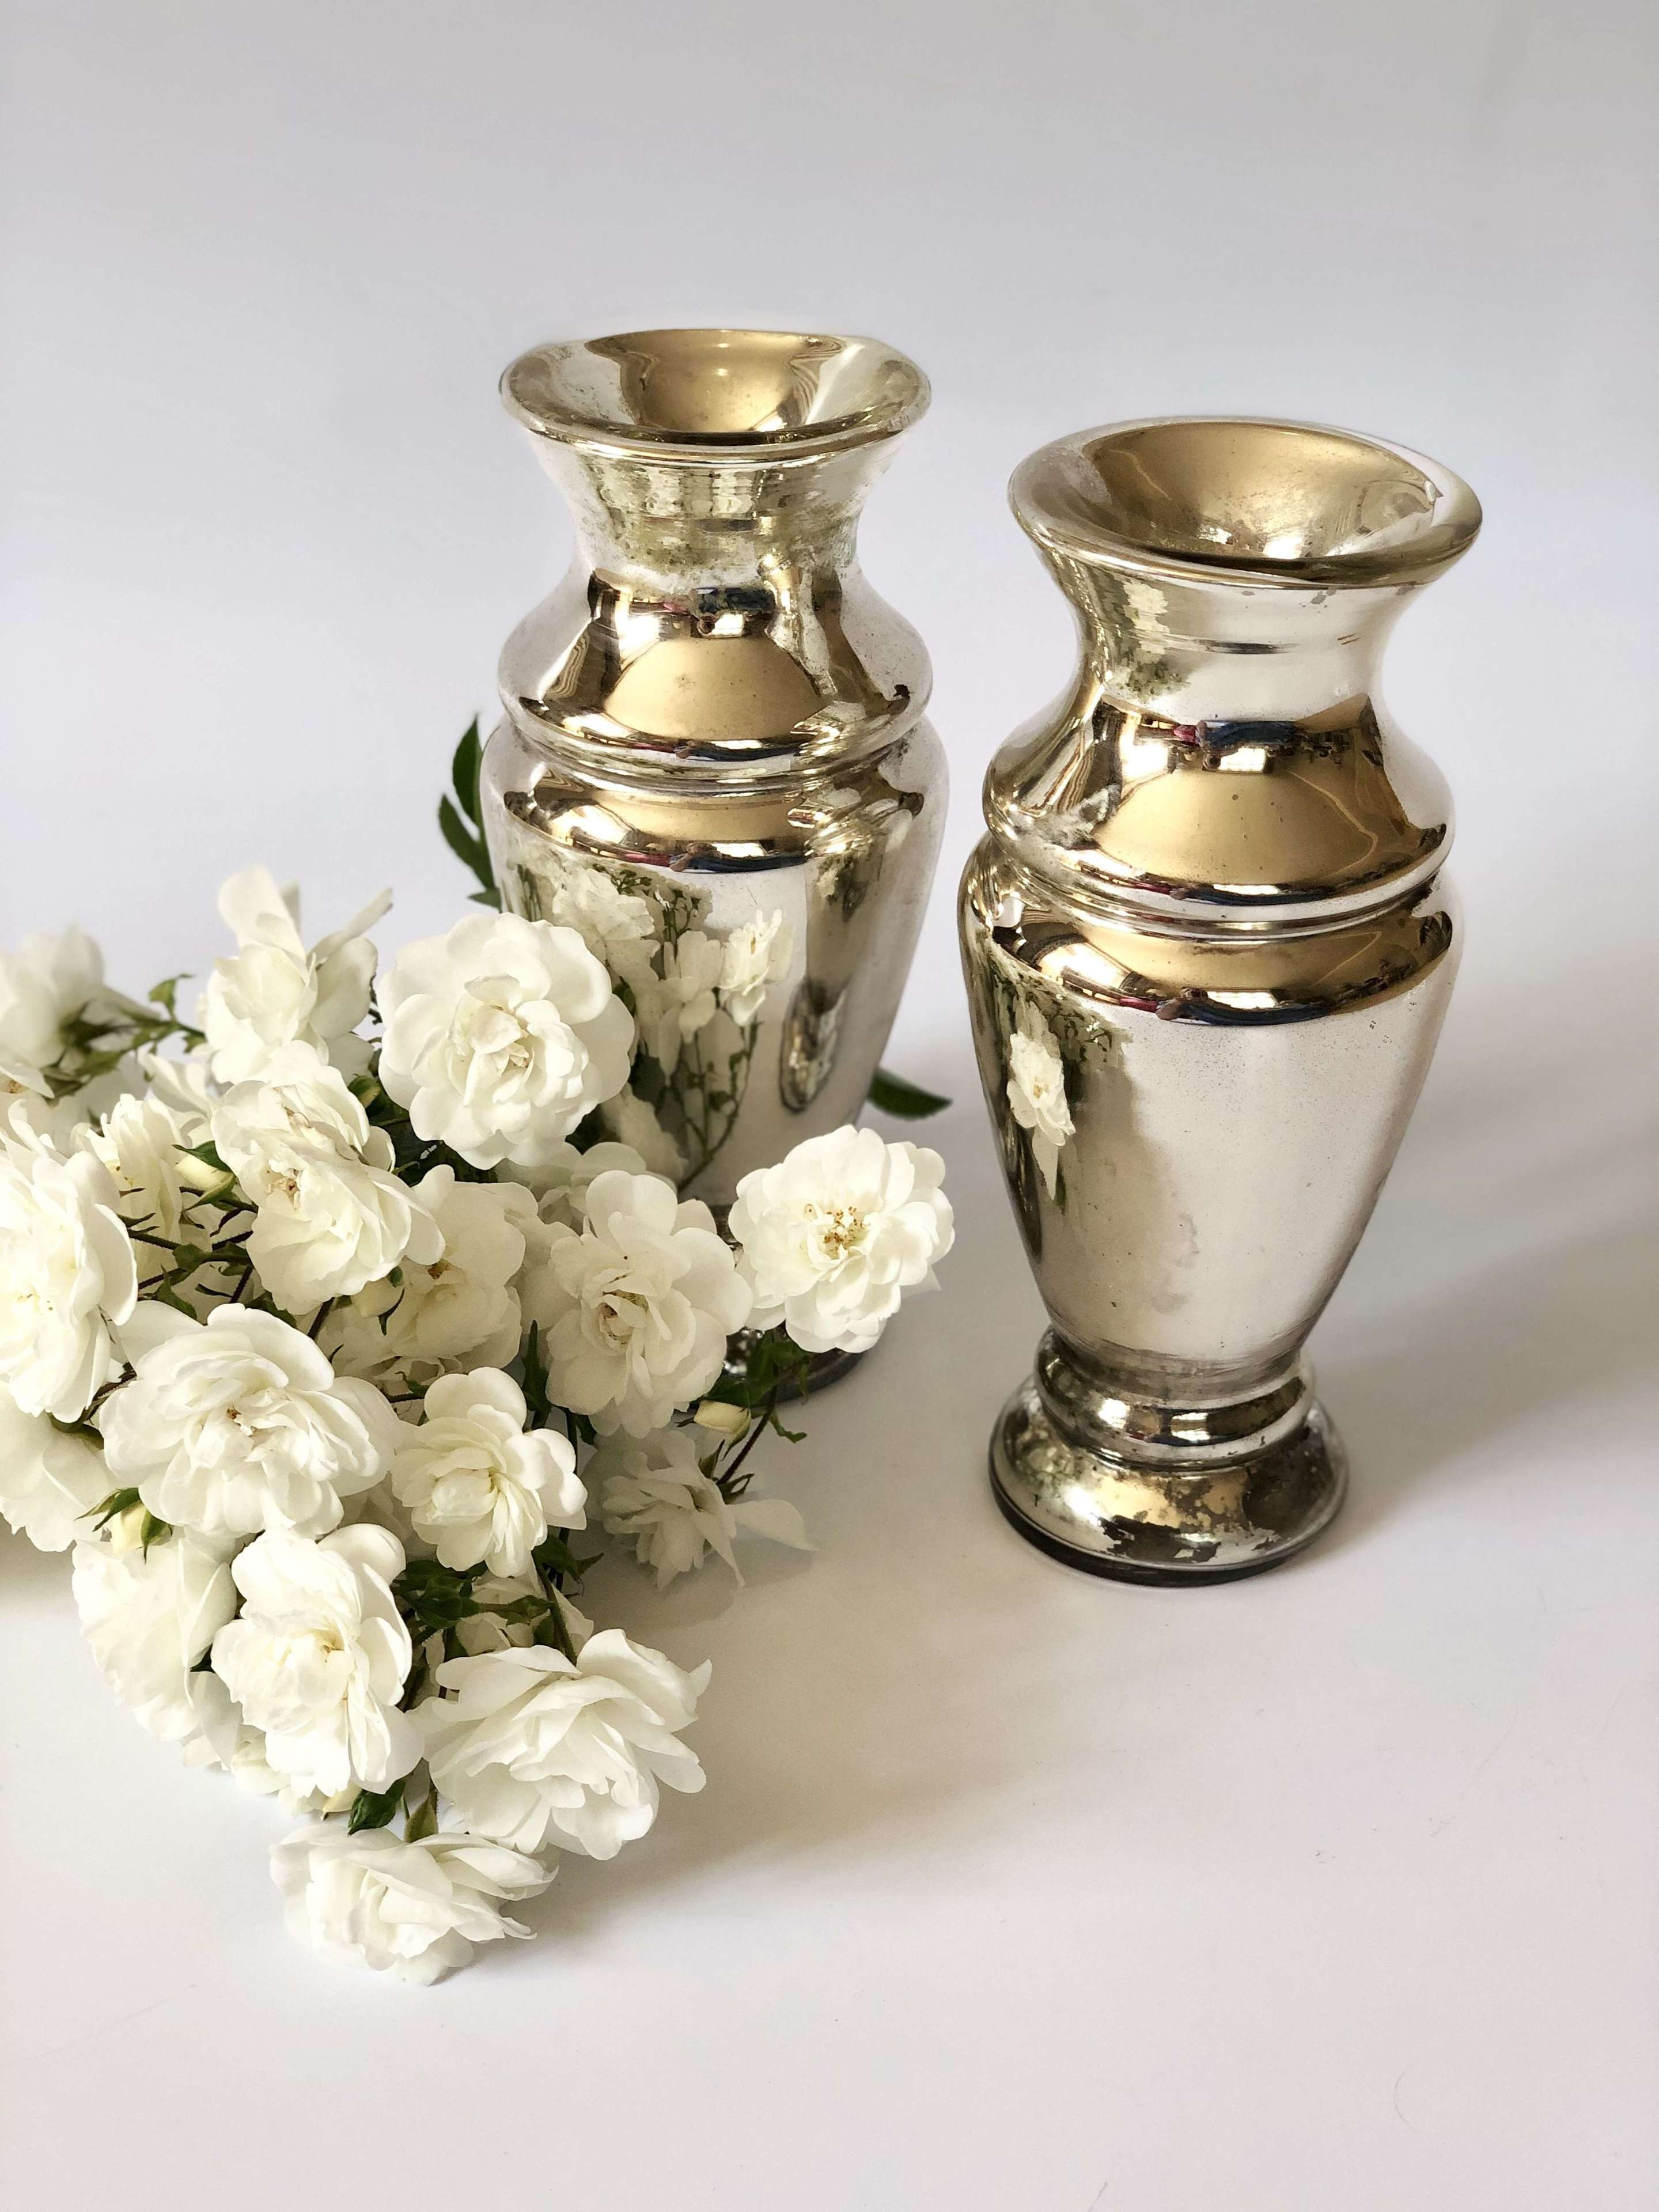 Pair of Victorian Mercury foxed glass mirrored vases